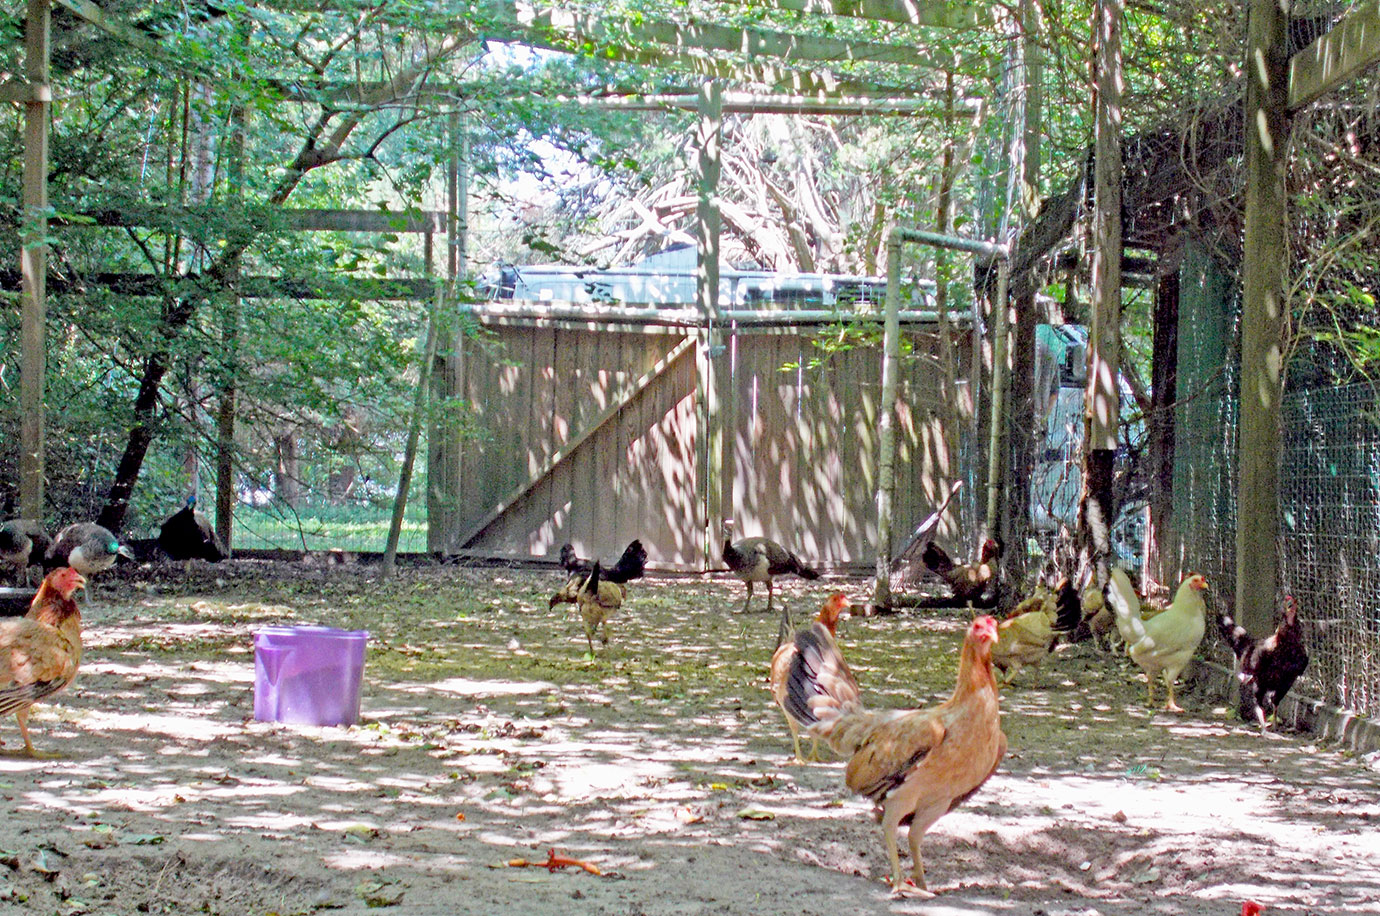 The hens exploring.